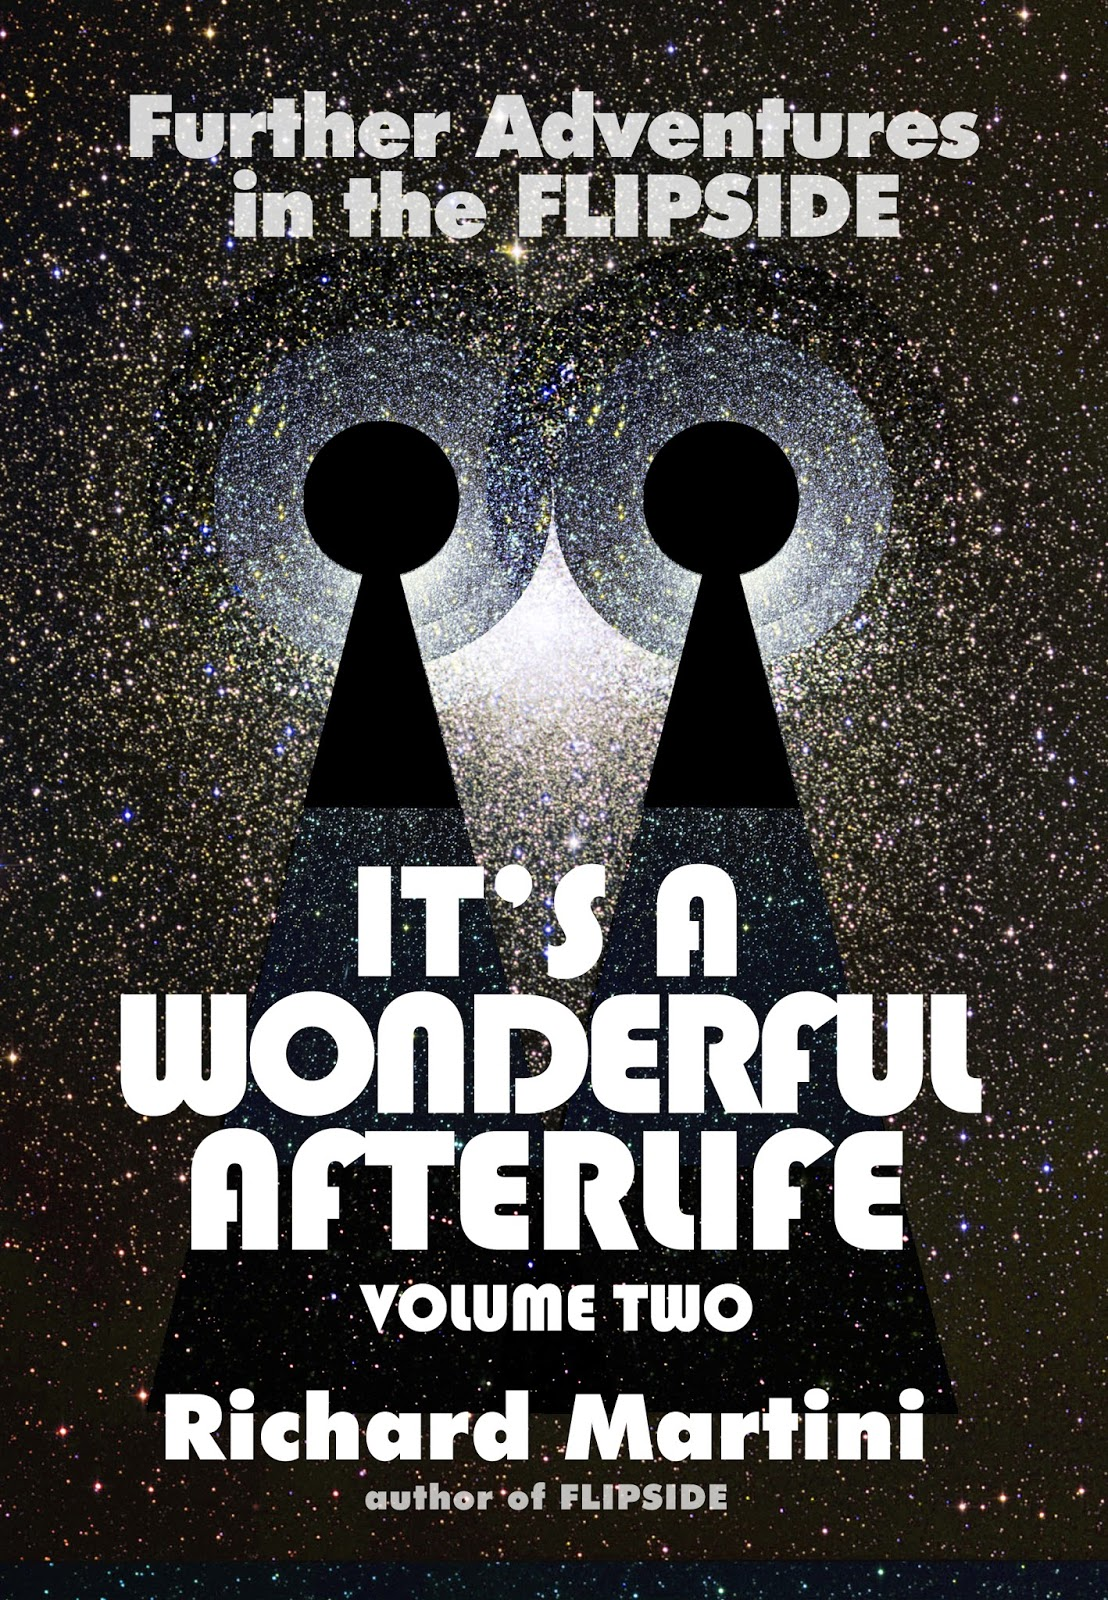 http://www.amazon.com/Its-Wonderful-Afterlife-Two-Adventures-ebook/dp/B00O879JYY/ref=sr_1_3?s=digital-text&ie=UTF8&qid=1412729206&sr=1-3&keywords=It%27s+A+Wonderful+Afterlife